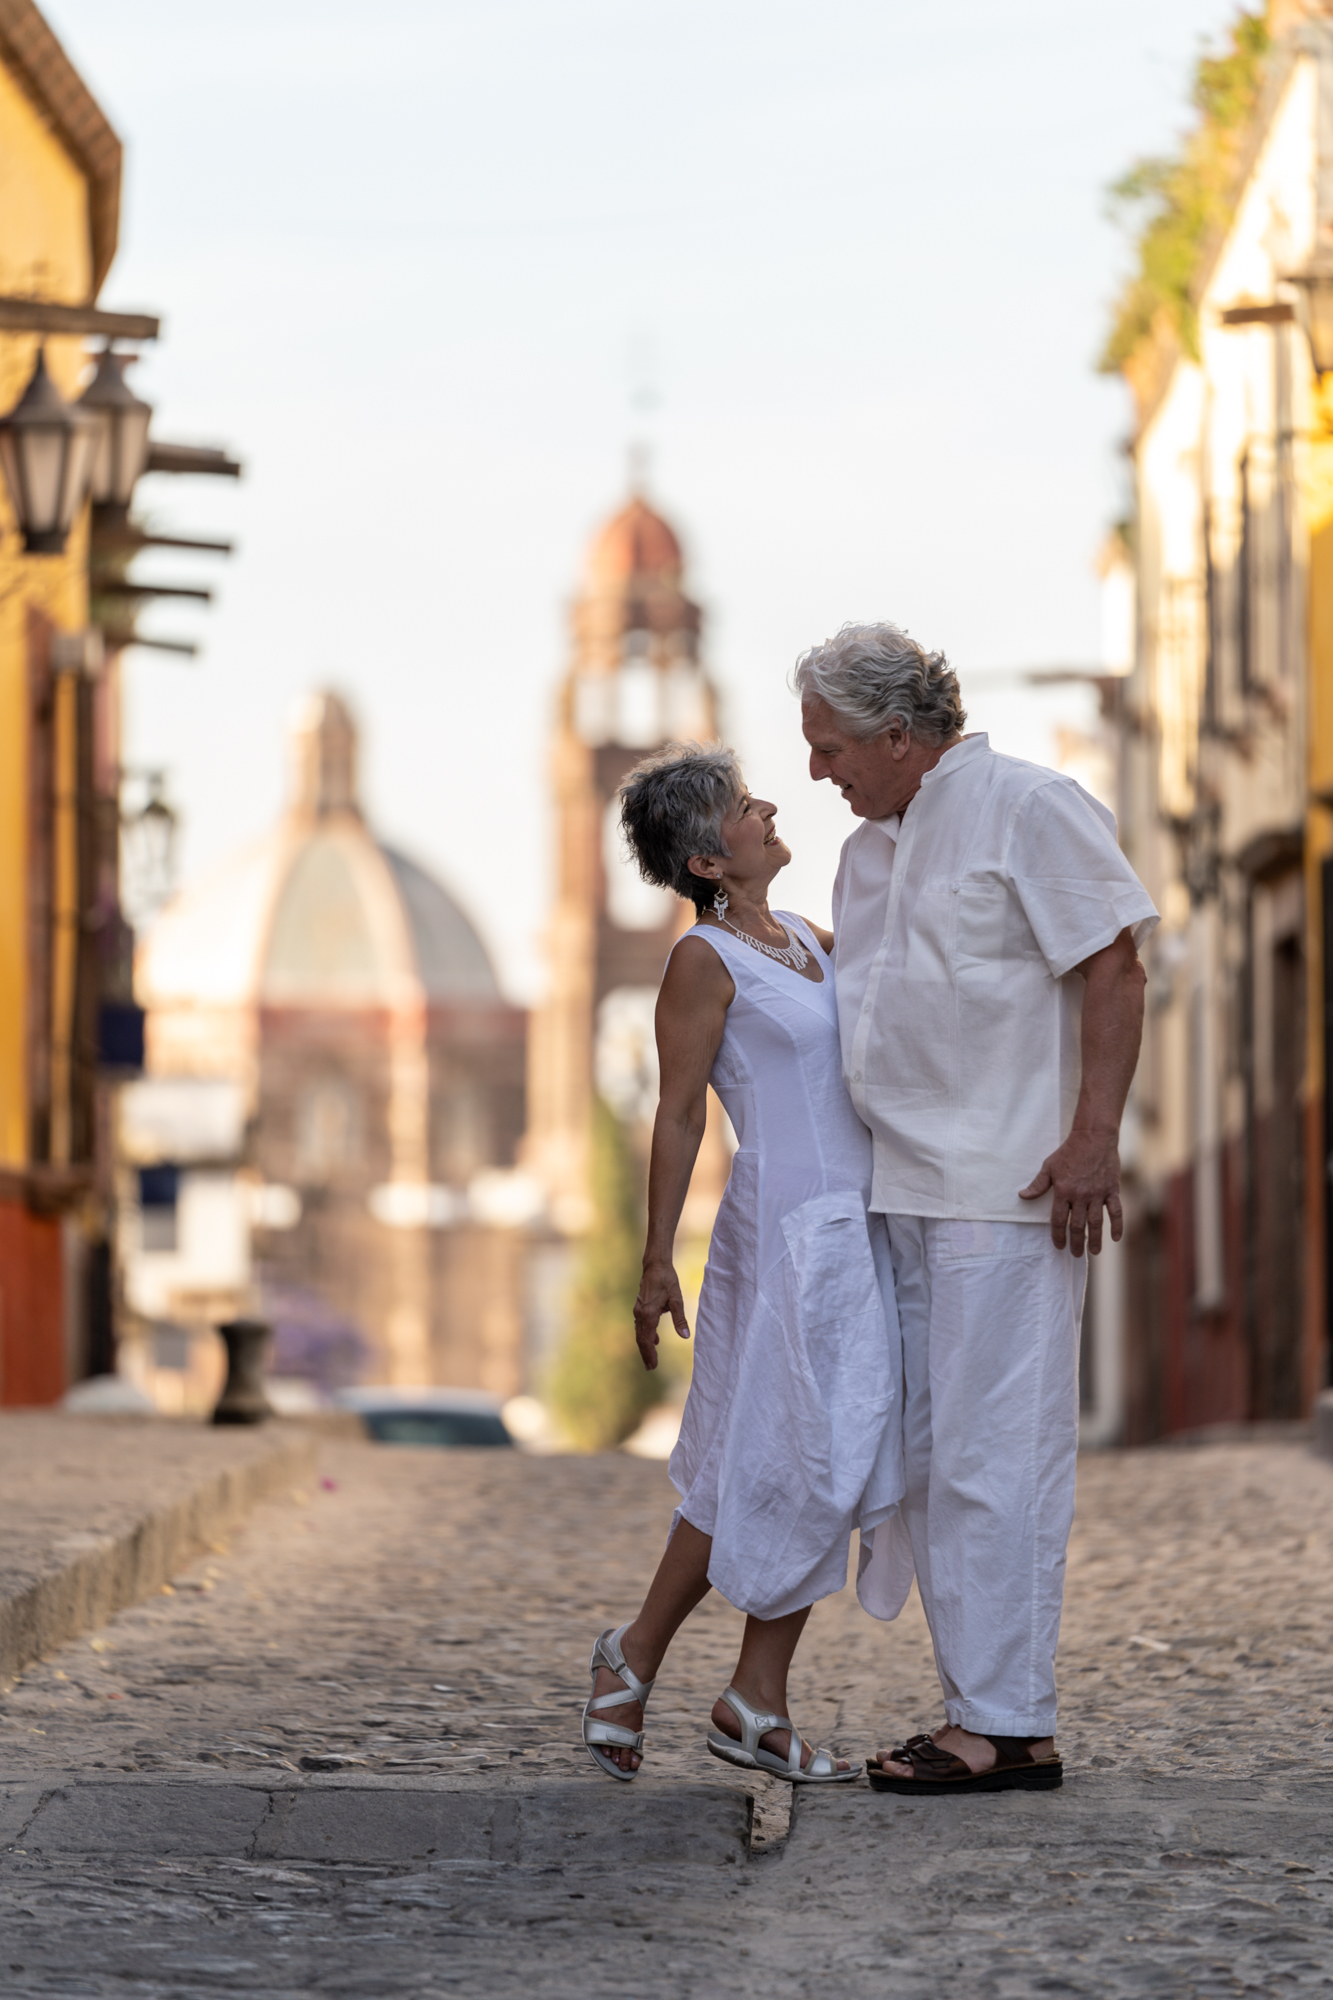 Photoshoot session in San Miguel de Allende with Suzanne and Leo-31.jpg